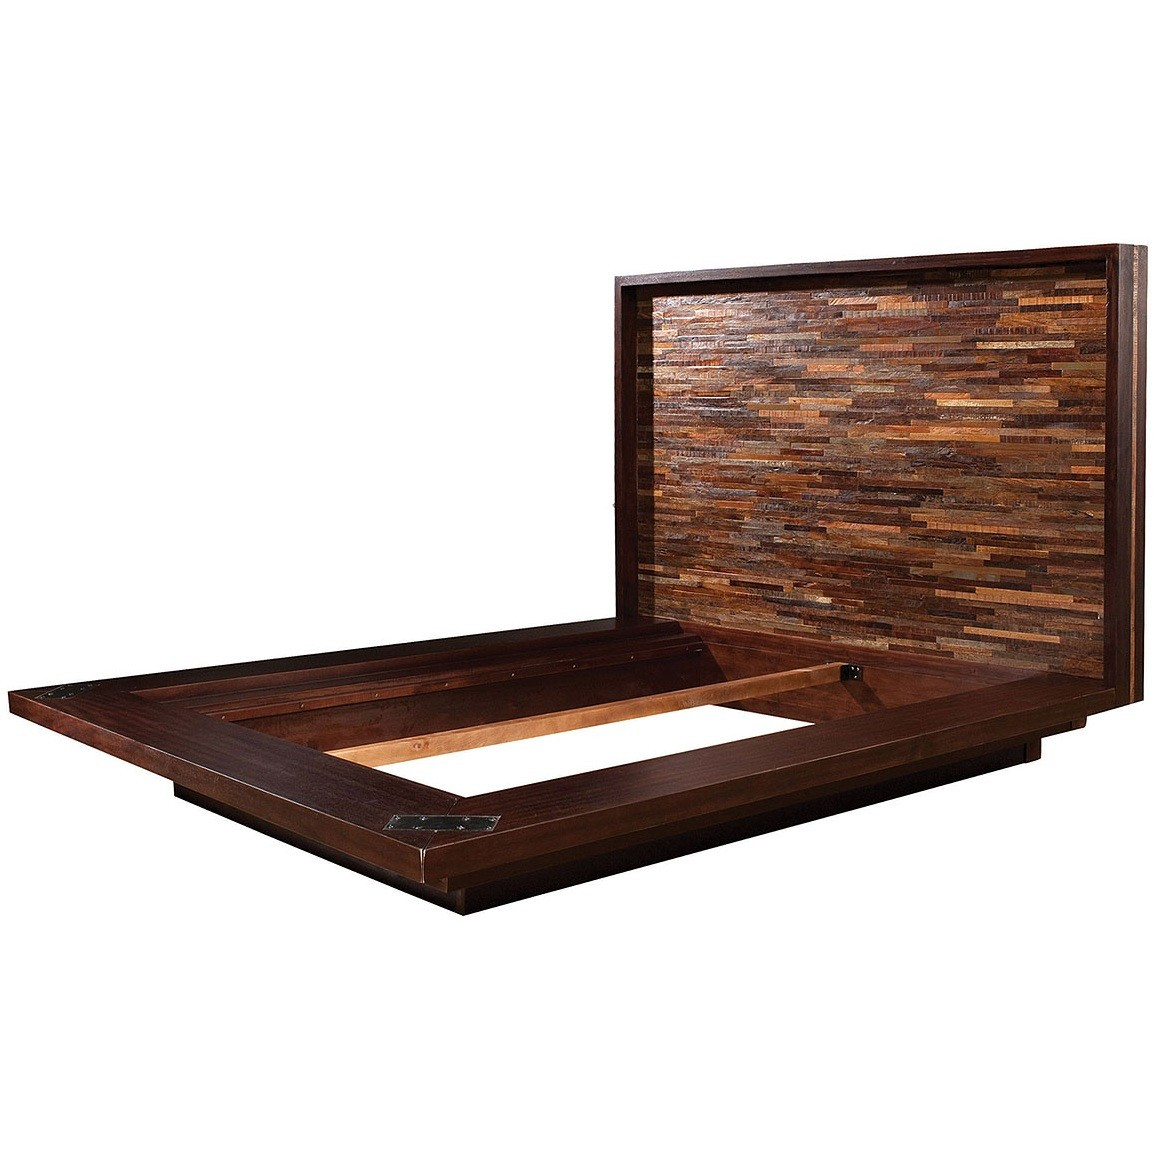 devon reclaimed wood queen platform bed frame zin home. Black Bedroom Furniture Sets. Home Design Ideas